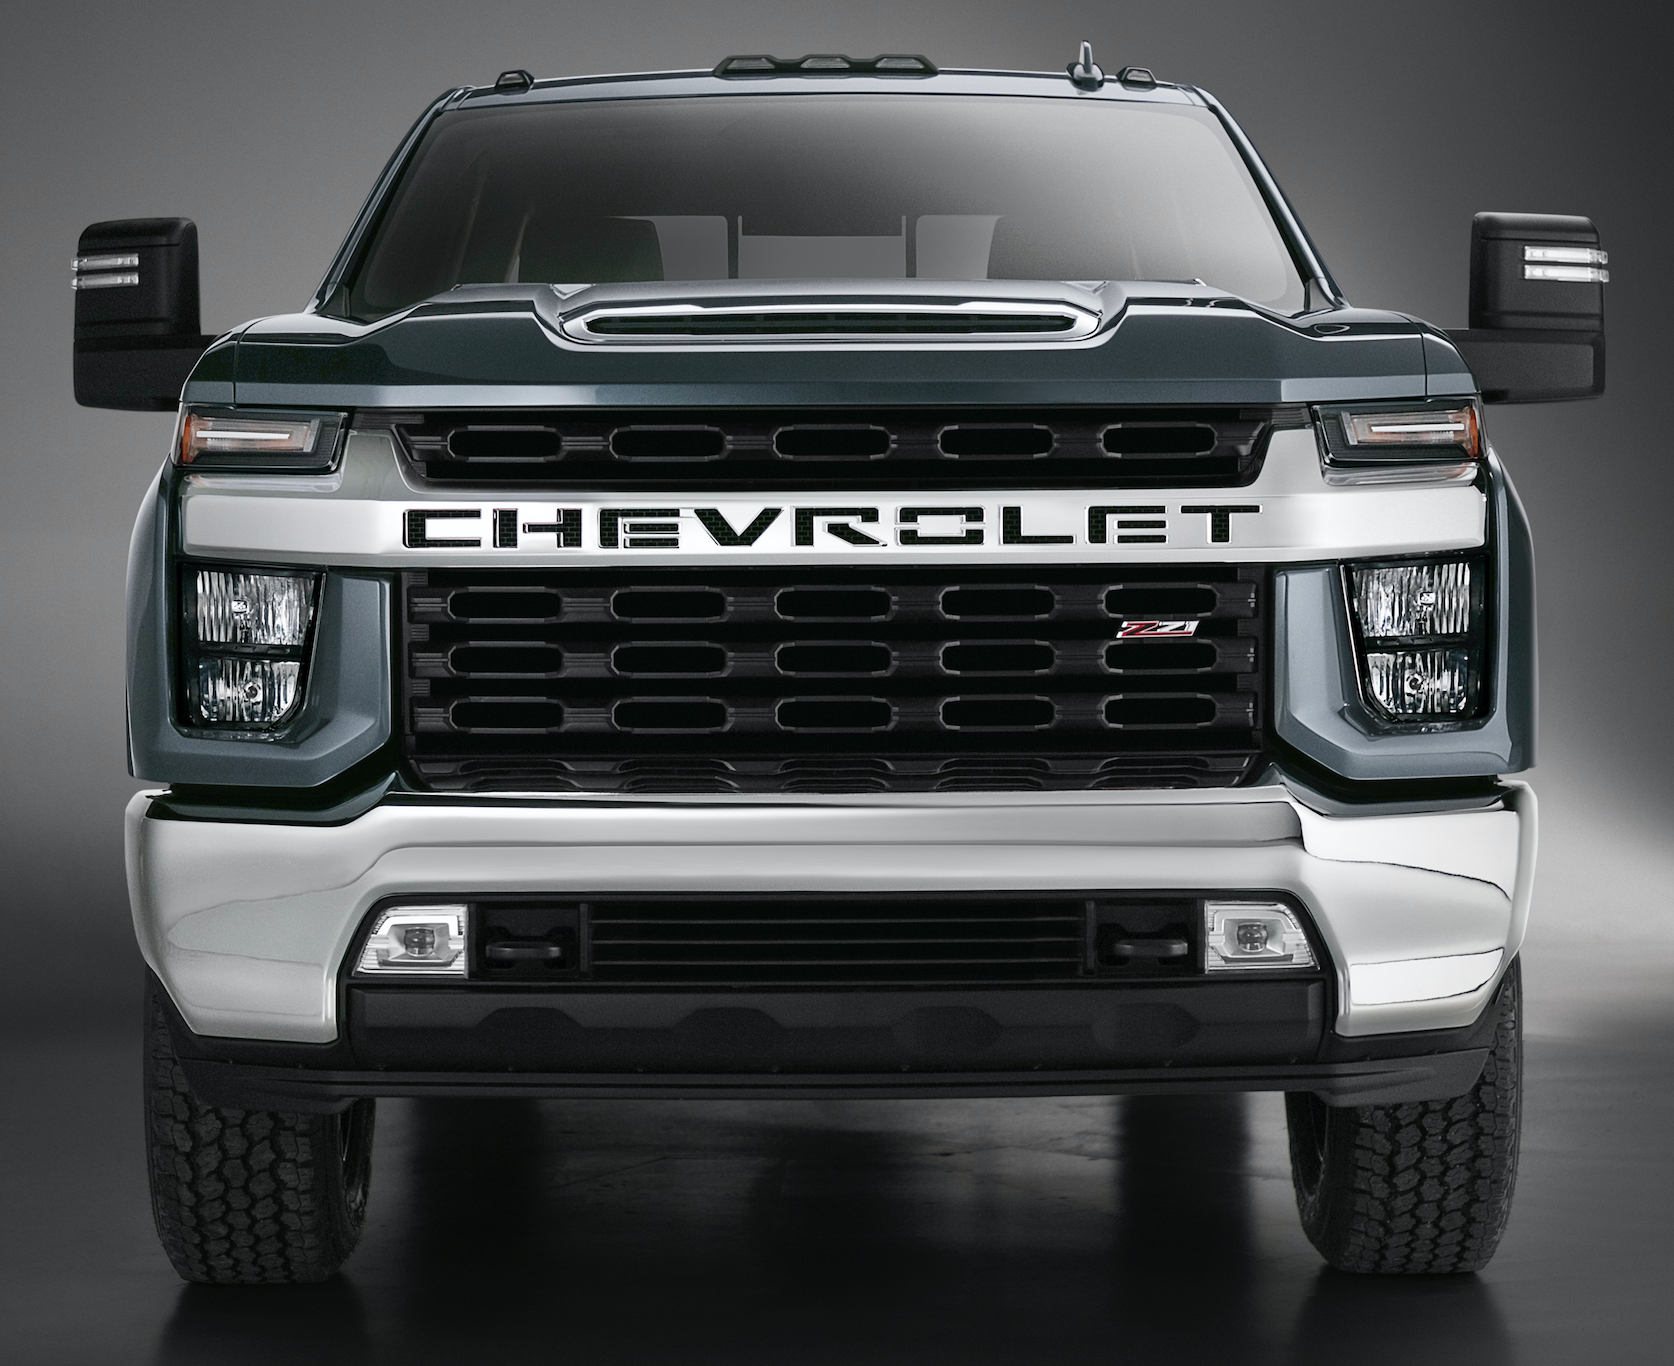 Chevy unveils 2020 Silverado HD | Medium Duty Work Truck Info